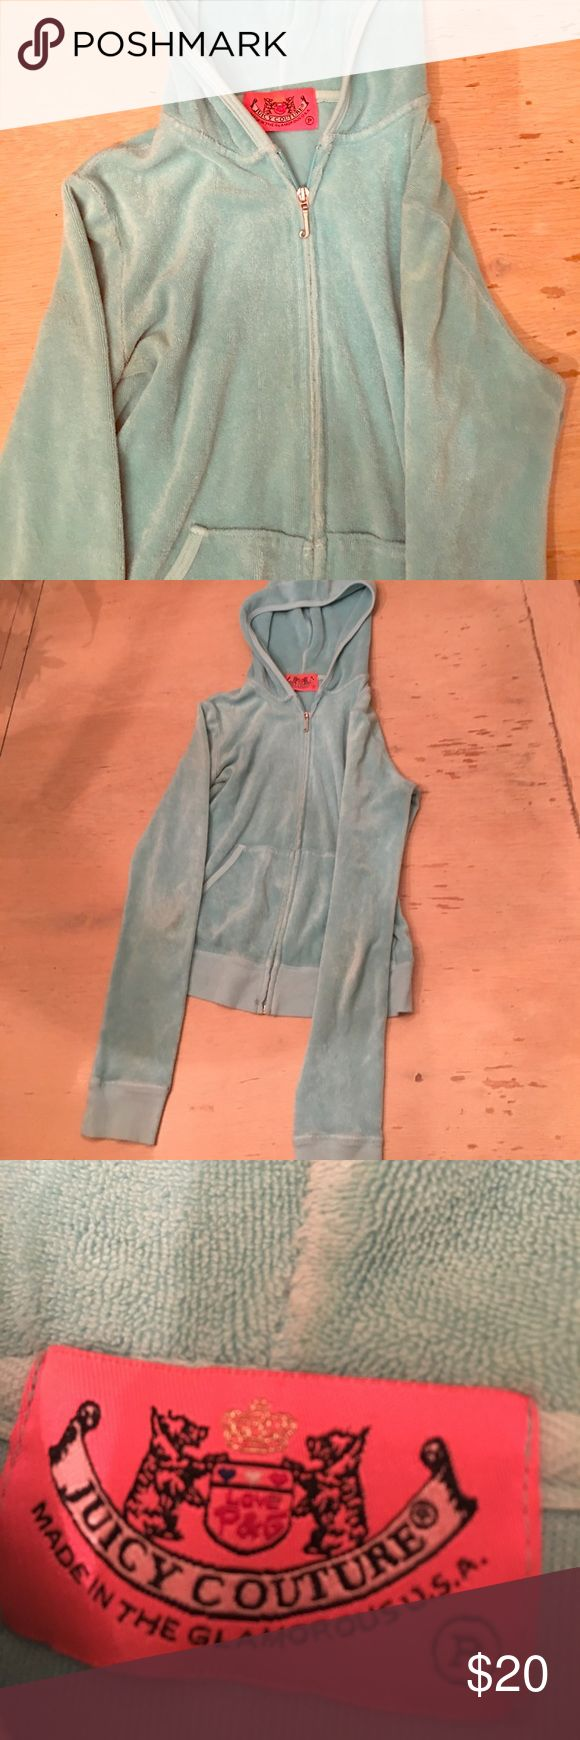 Juicy couture teal/aqua blue zip up jacket Juicy couture jacket with hood. size petite colored aqua teal baby blue type of color hardly signs of wear still good condition Juicy Couture Tops Sweatshirts & Hoodies